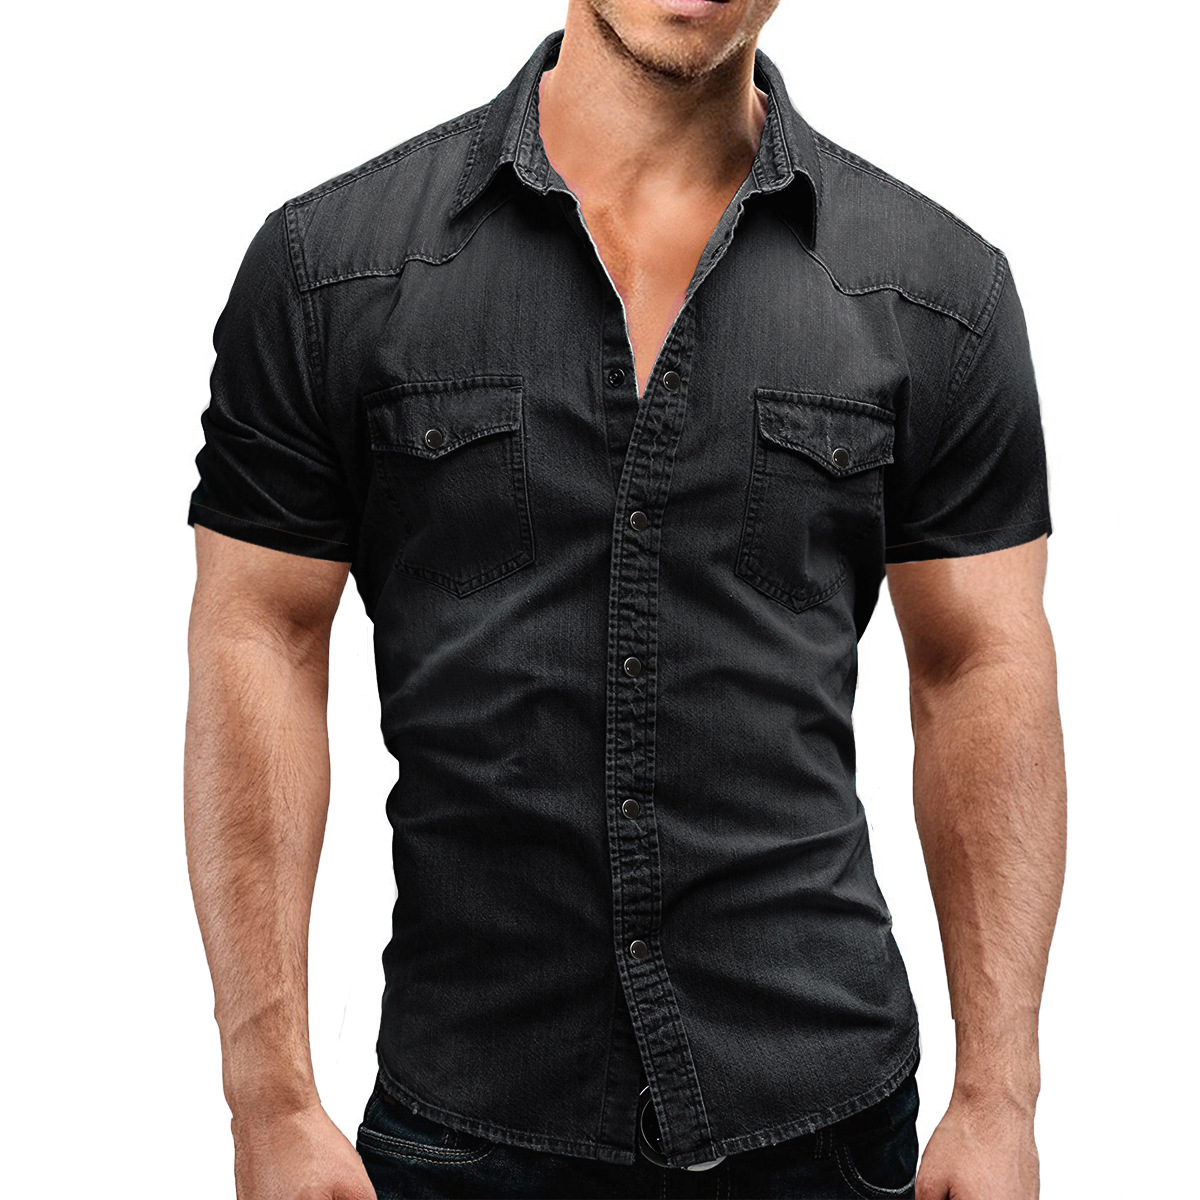 Men's Regular-fit Long-Sleeve Denim Work Shirt Two Button Front Chest Pockets & Pencil Slot Rugged Wear Thin Casual Cotton Shirts 3